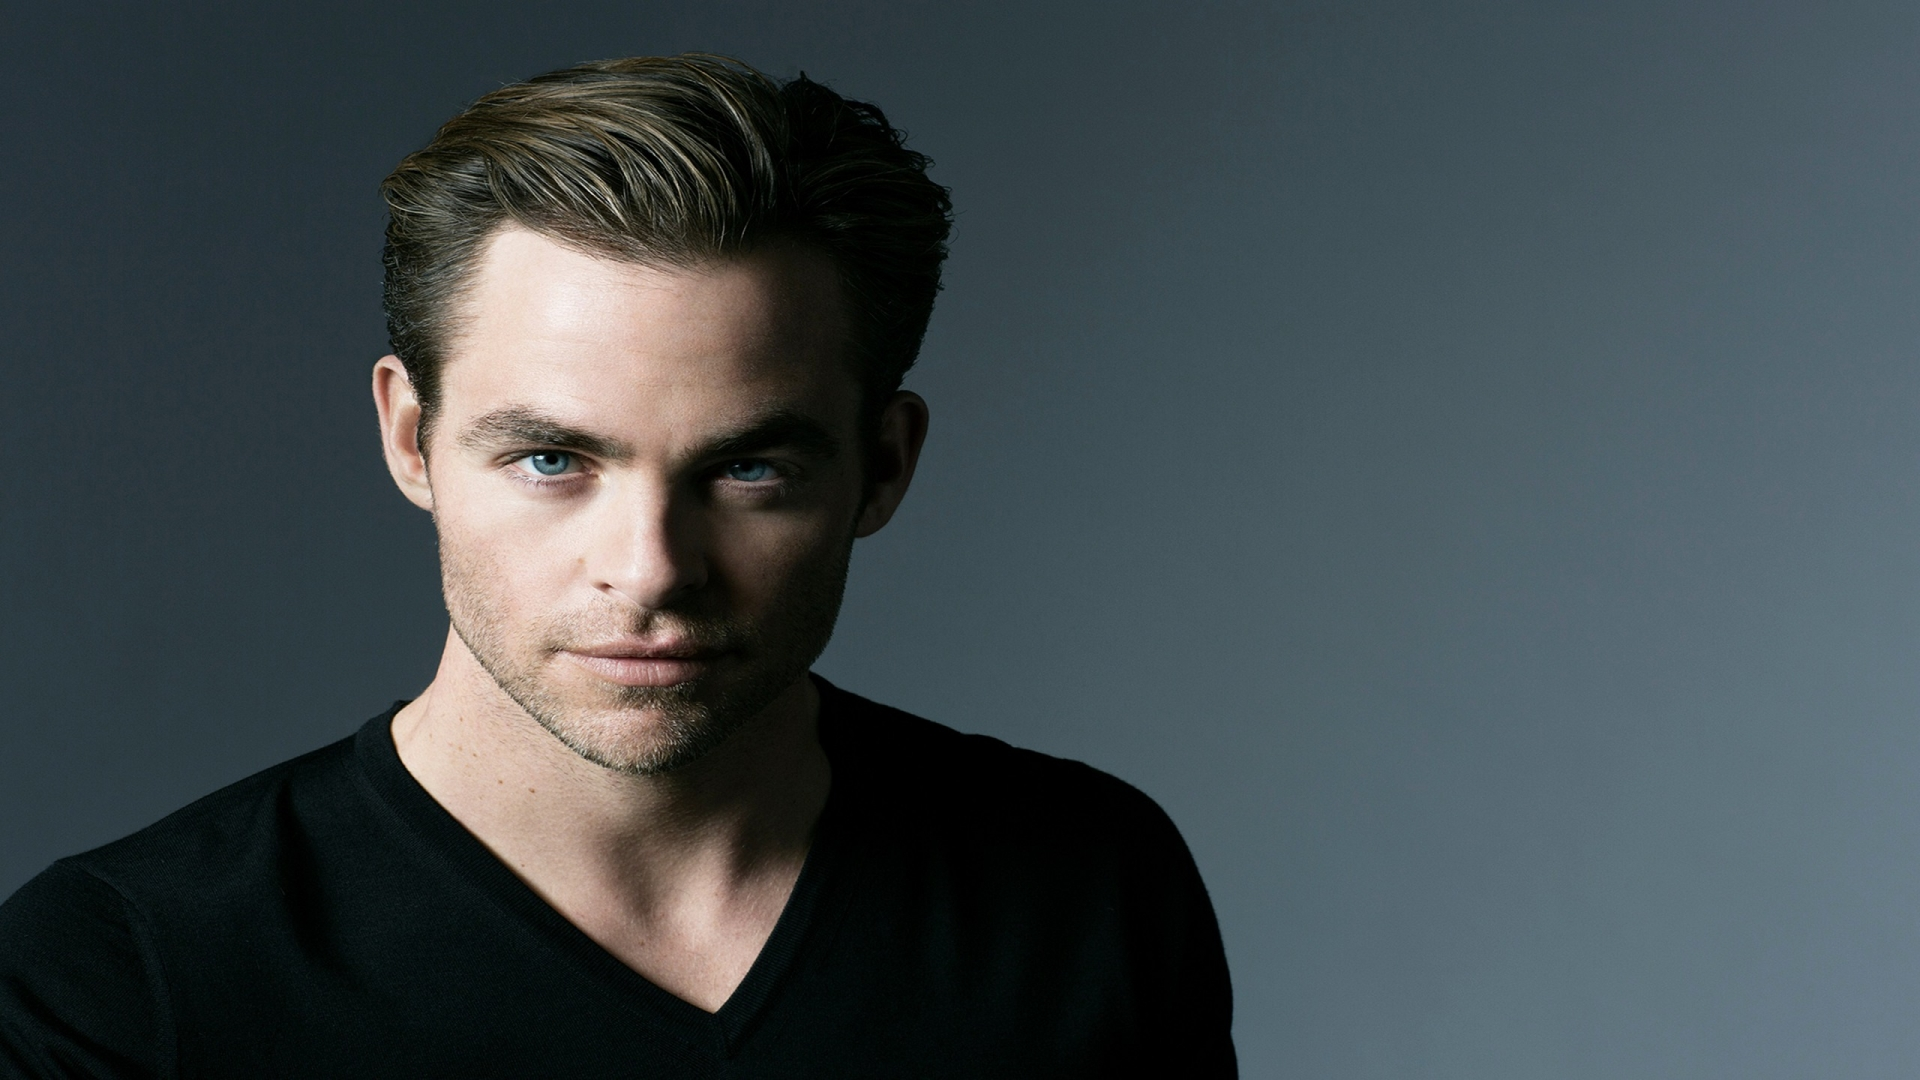 Chris Pine Smart Look for 1920 x 1080 HDTV 1080p resolution